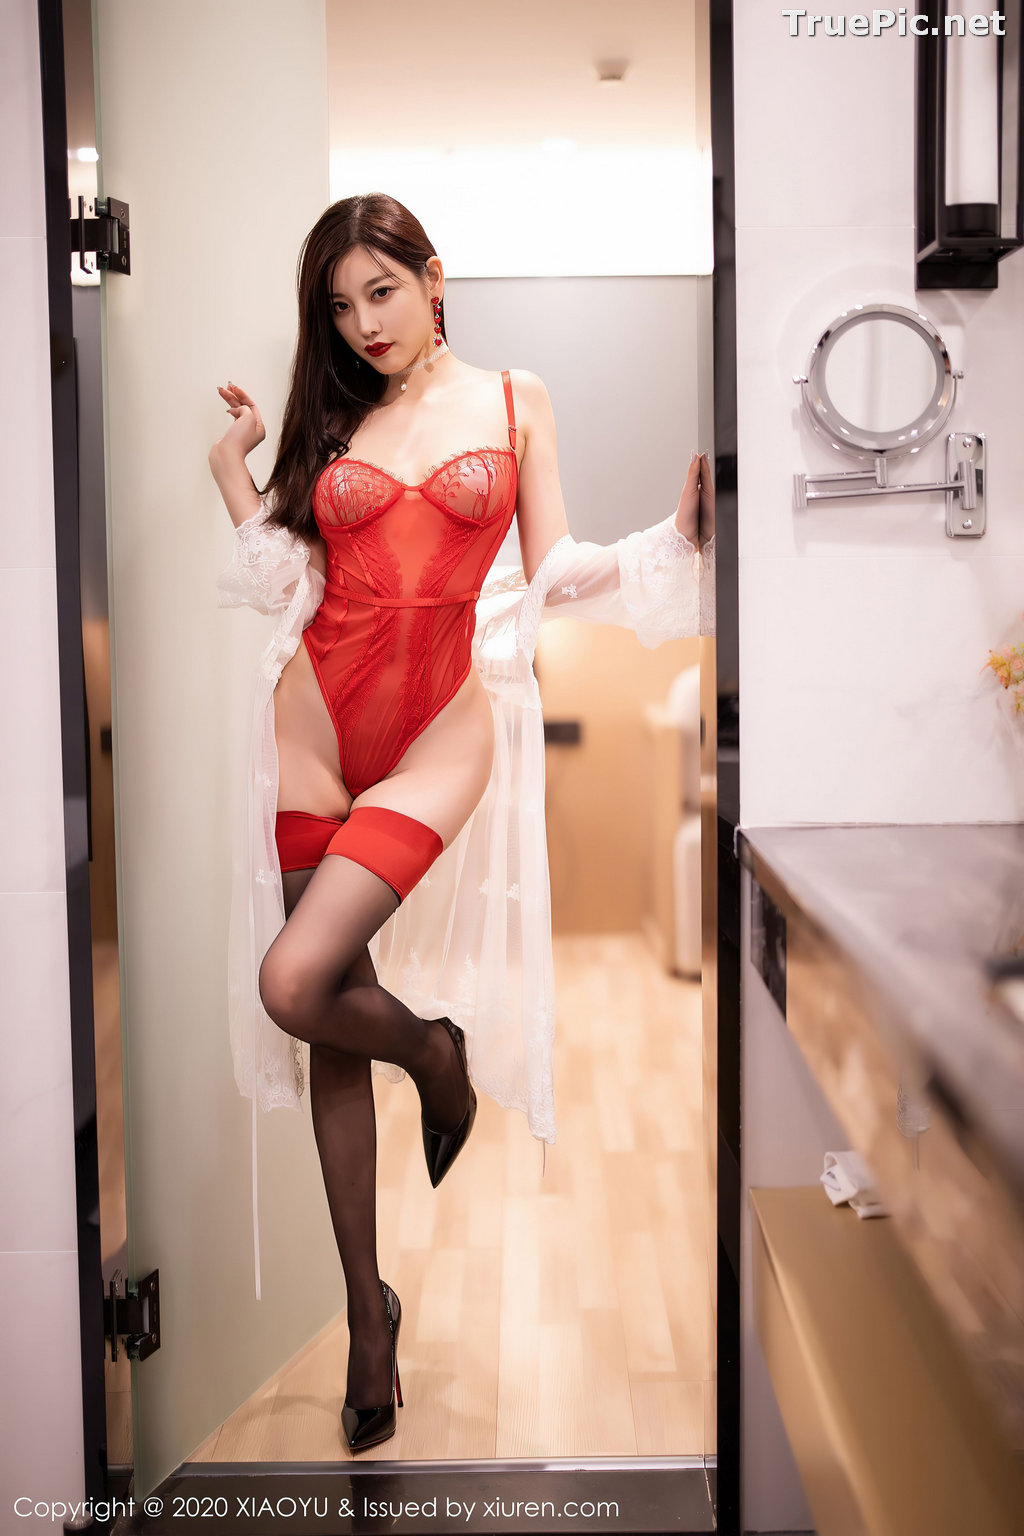 Image XiaoYu Vol.413 - Chinese Model - Yang Chen Chen (杨晨晨sugar)- Red Crystal-clear Lingerie - TruePic.net - Picture-22